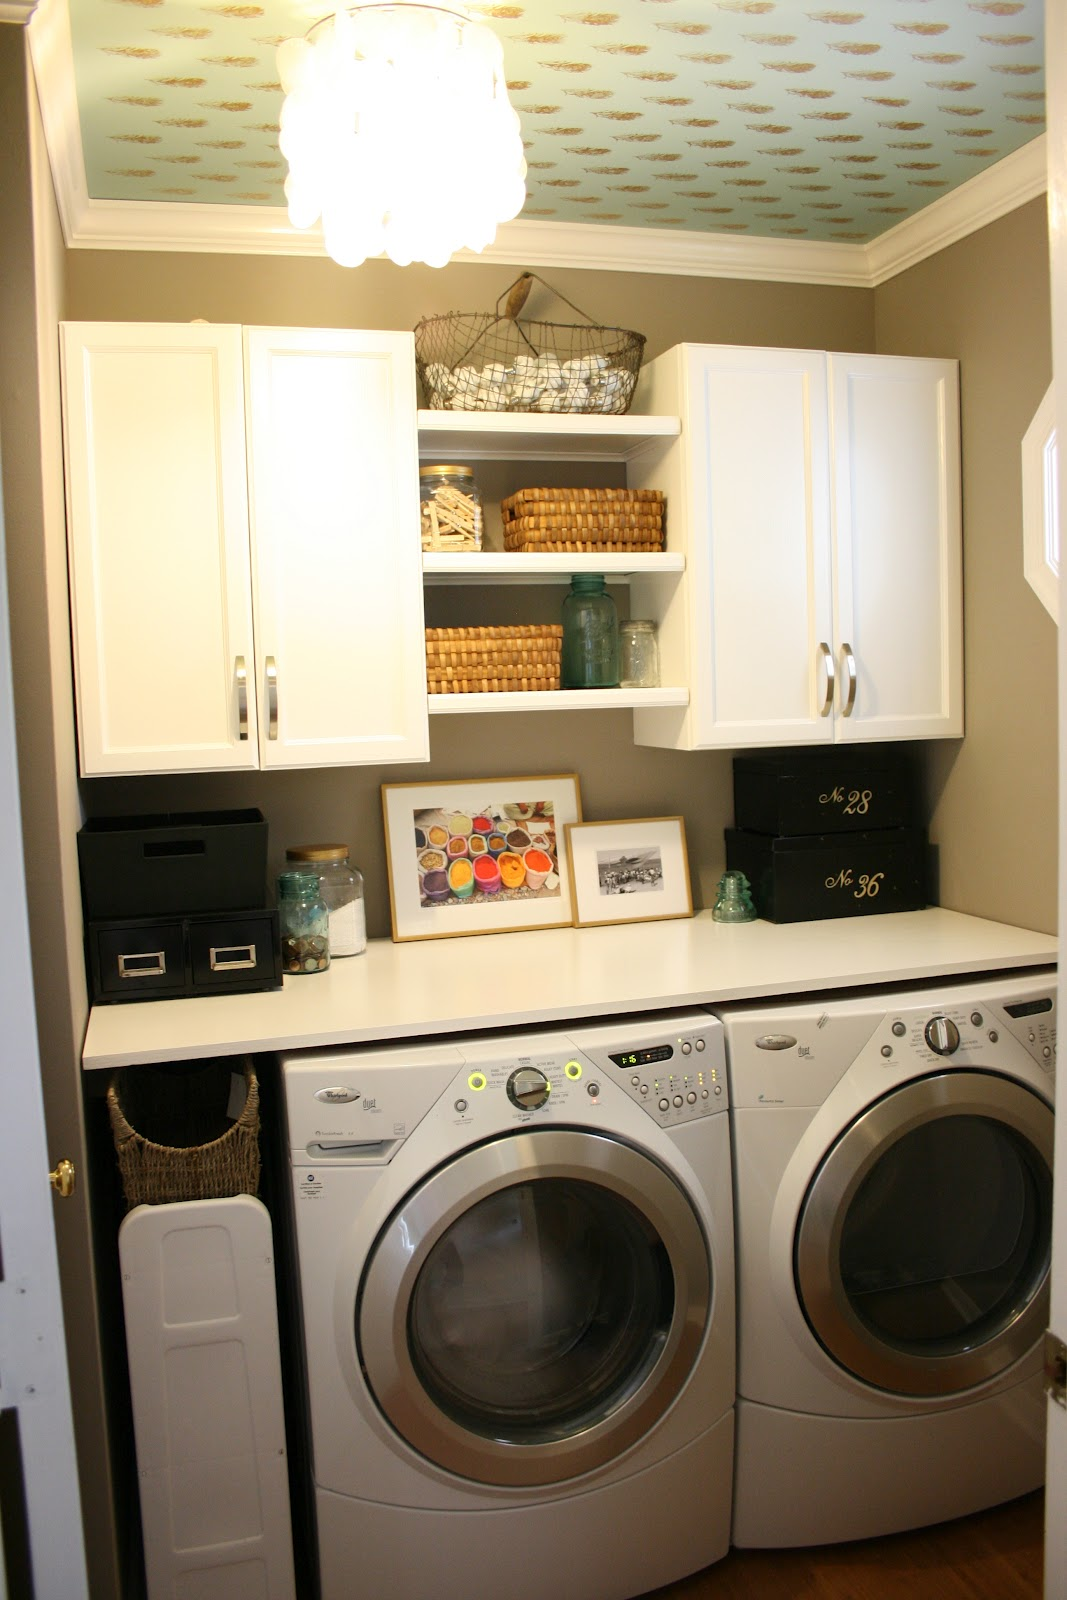 The boutons laundry room Laundry room design